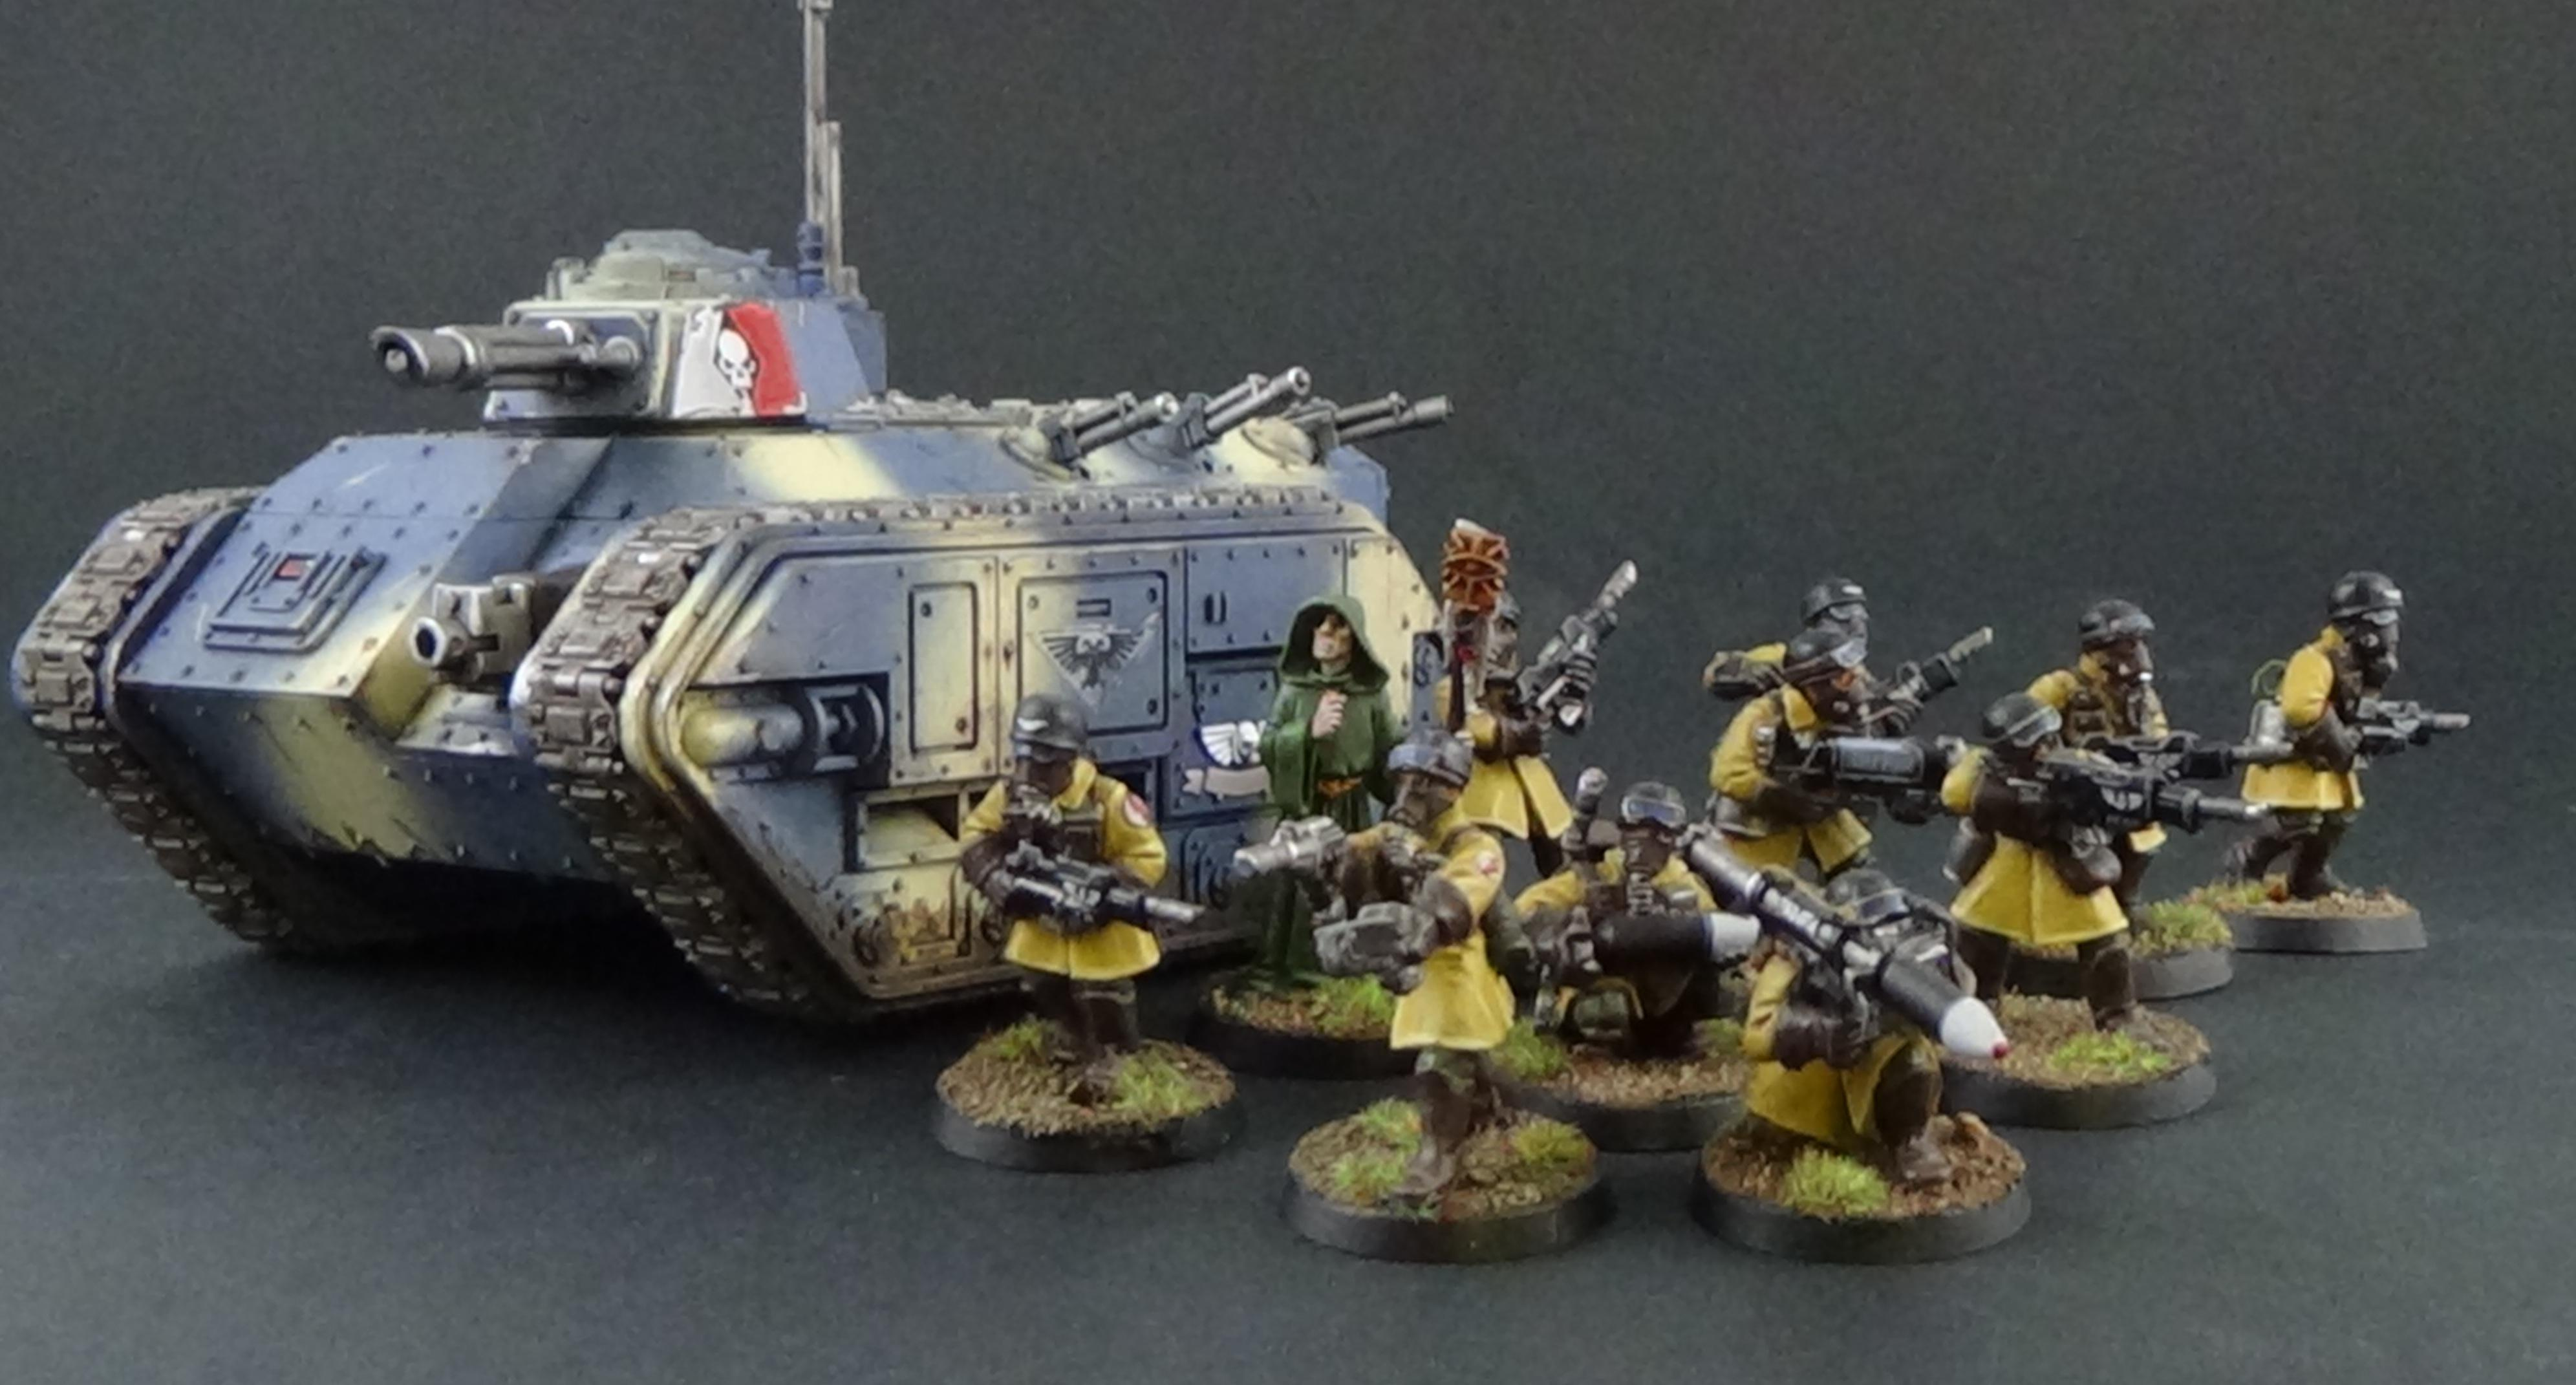 Imperial Guard, Steel Legion, Warhammer 40,000